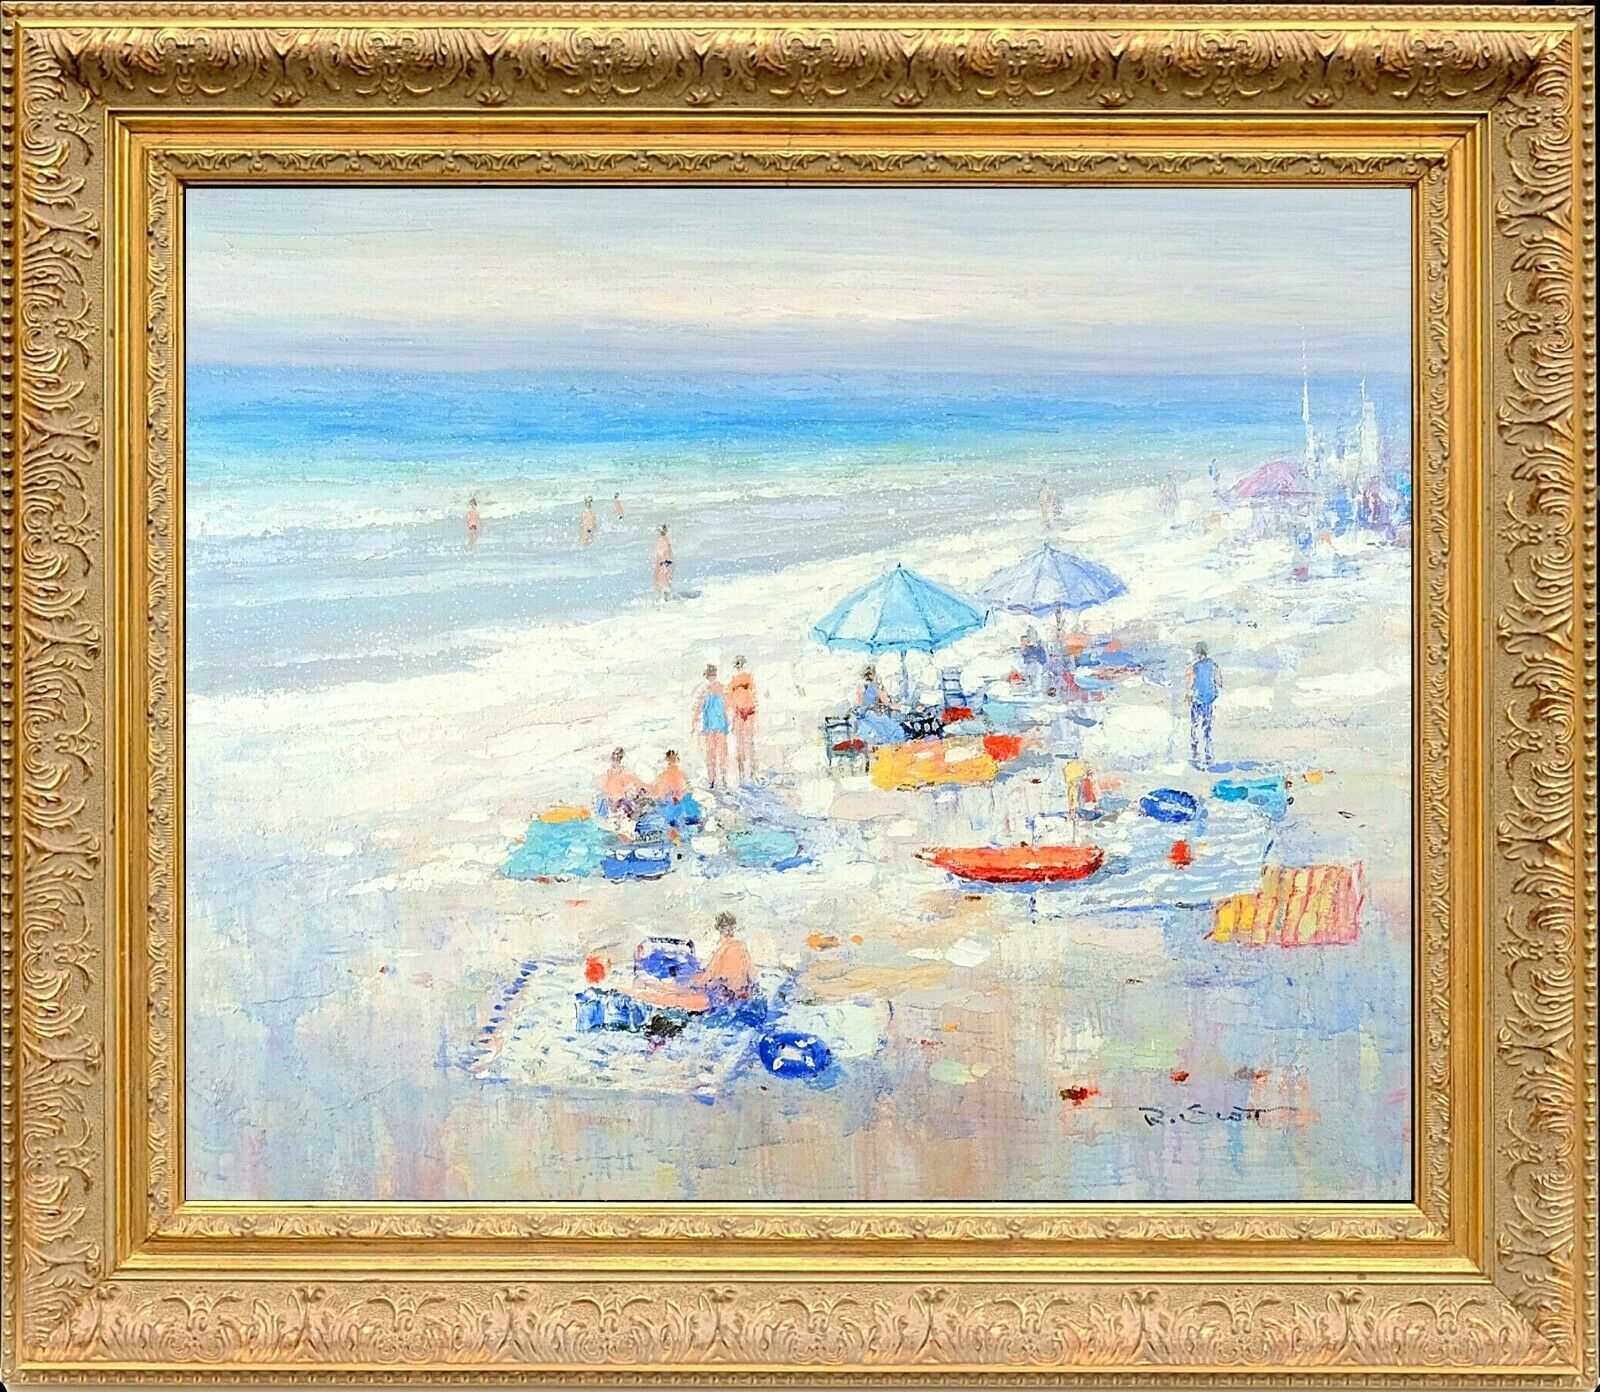 Gold Framed Oil Painting, Summer Blue Beach Scenery Sea Scape, R Scott Signed - $325.00